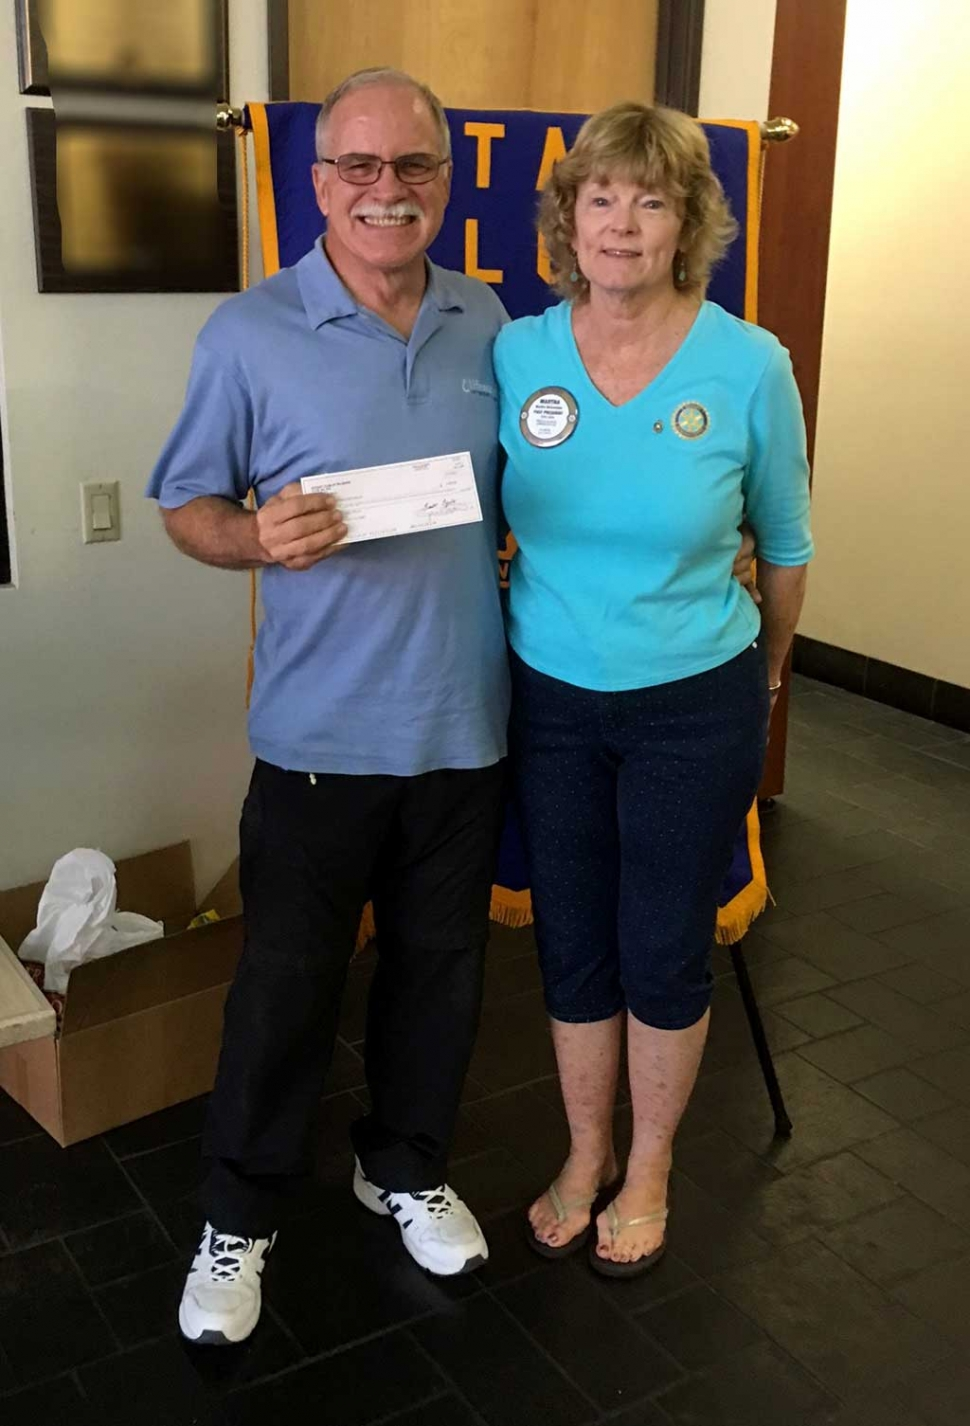 Rod Thompson of Life Water accepted a donation from Martha Richardson. Life Water is an International group that builds water wells in needy countries, teaches the people how to maintain the wells, sanitation, and how to have a healthy life.